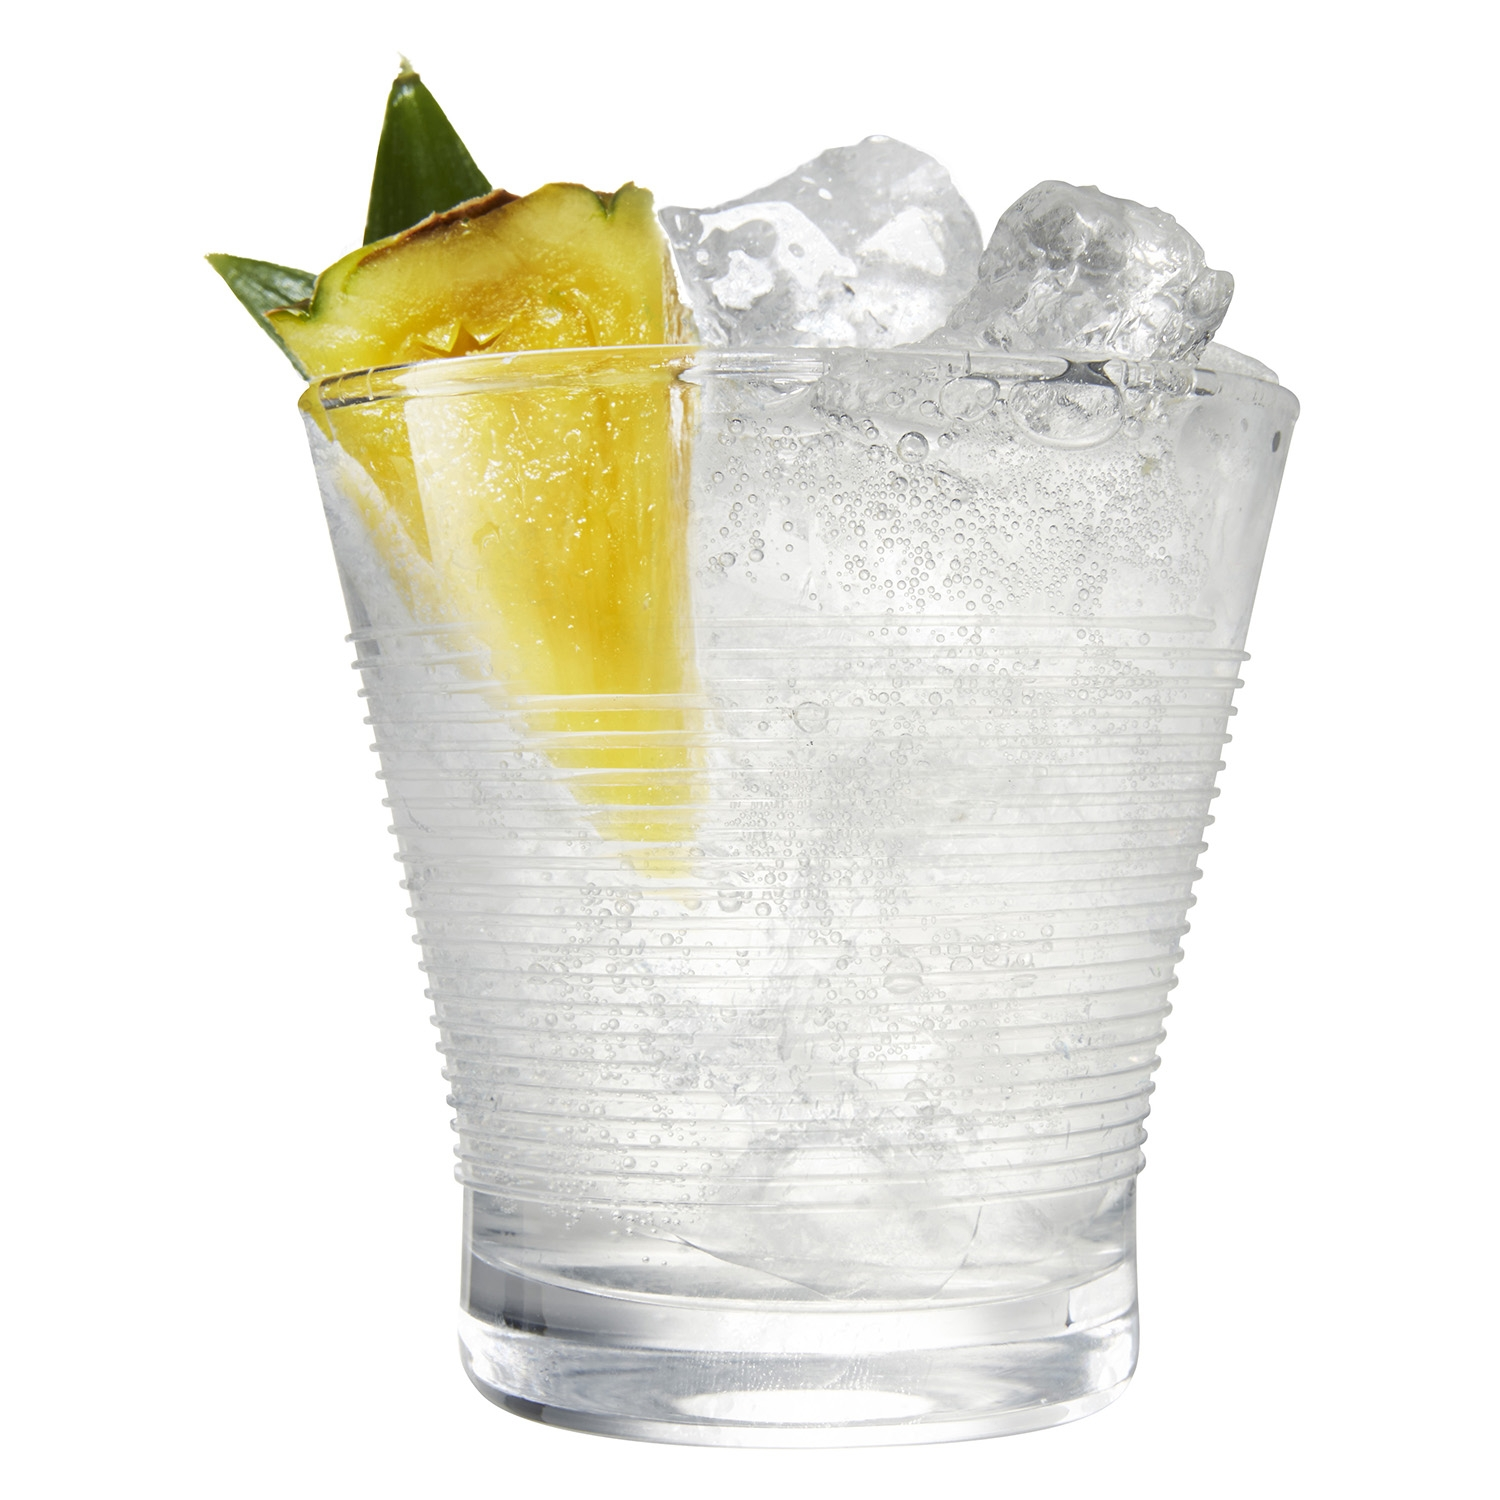 Vodka Cîroc sabor piña 75 cl. - 2